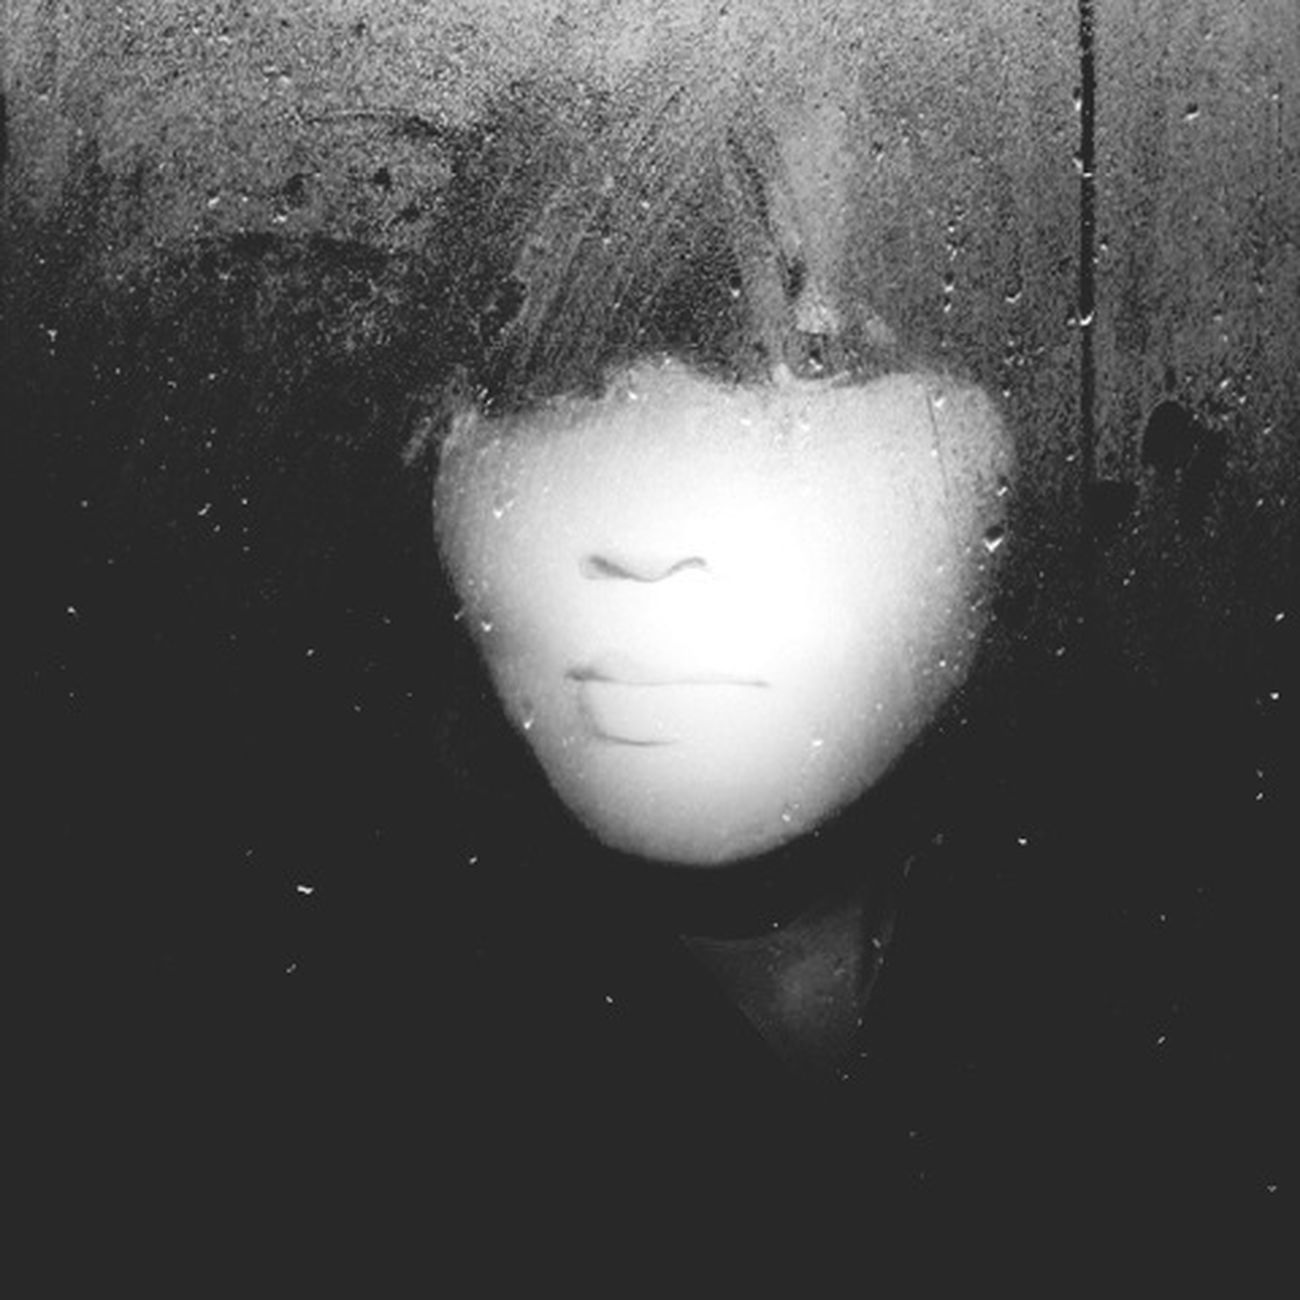 Only if you knew you have the keys to make me or break me. I know you would choose to break me. EyeEmBestEdits Fading Memory Heart My Soul Is Stained...